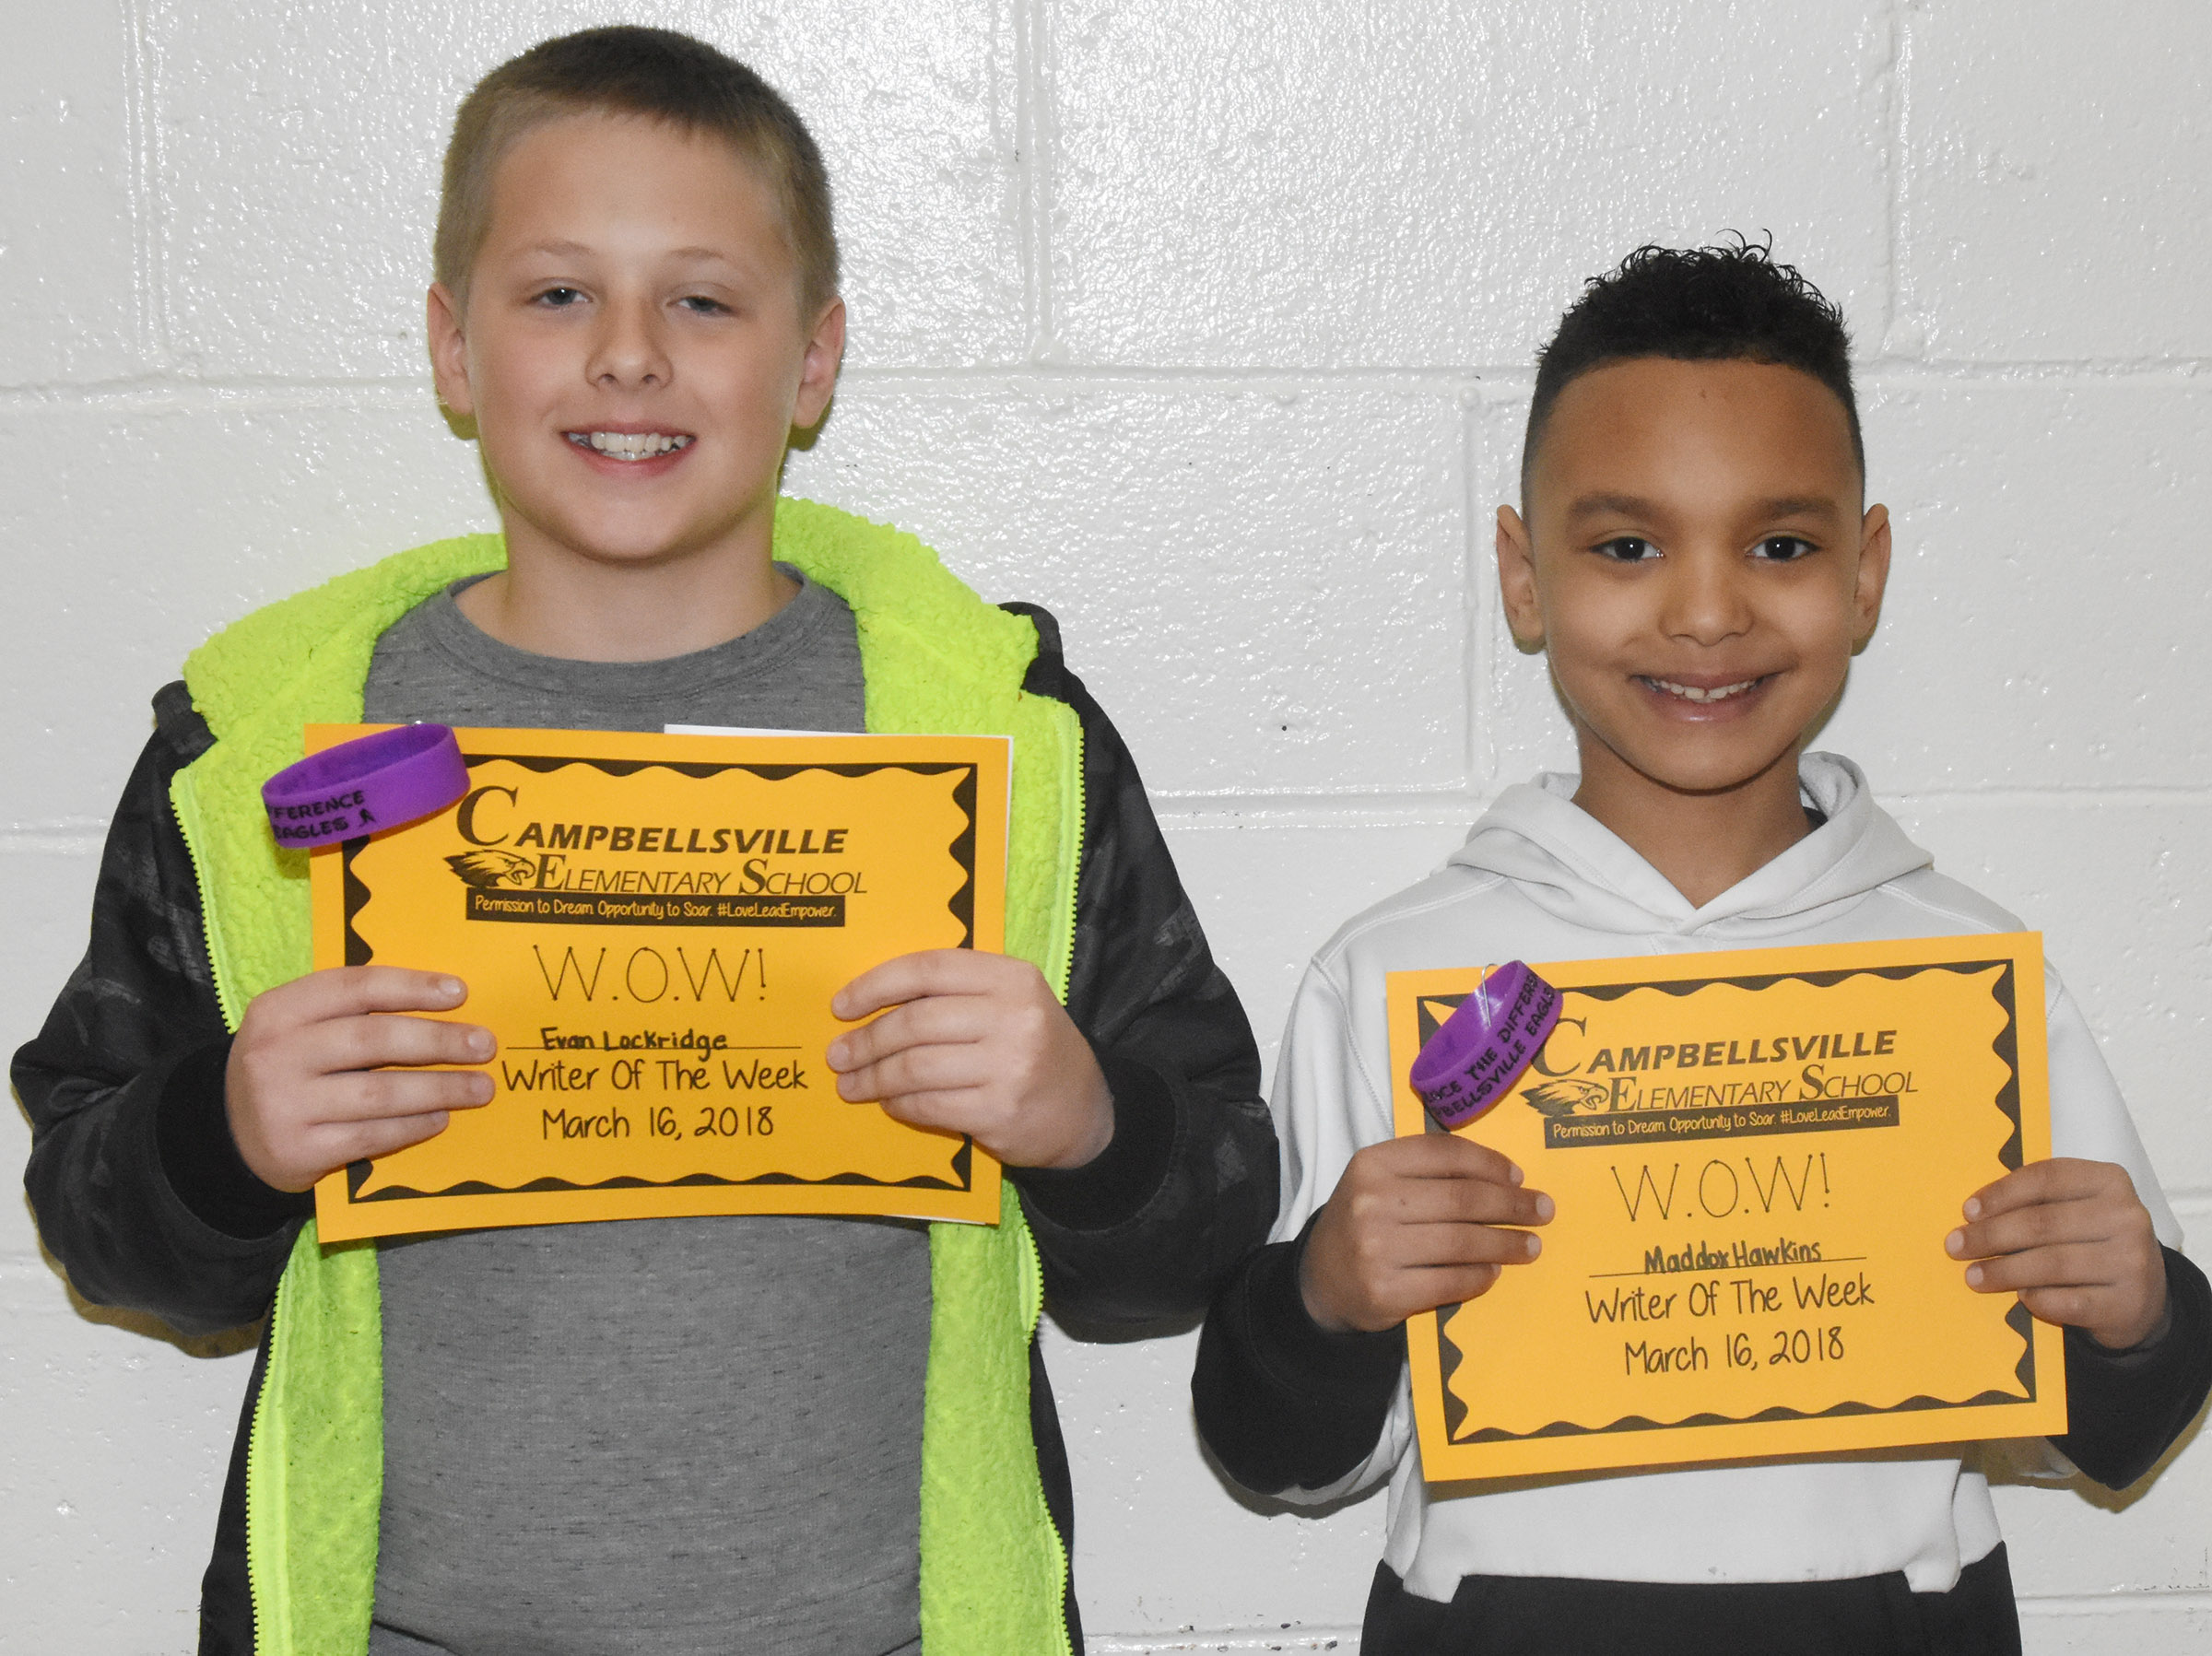 CES third-graders Evan Lockridge, at left, and Maddox Hawkins were named Writers of the Week for the week of March 12.